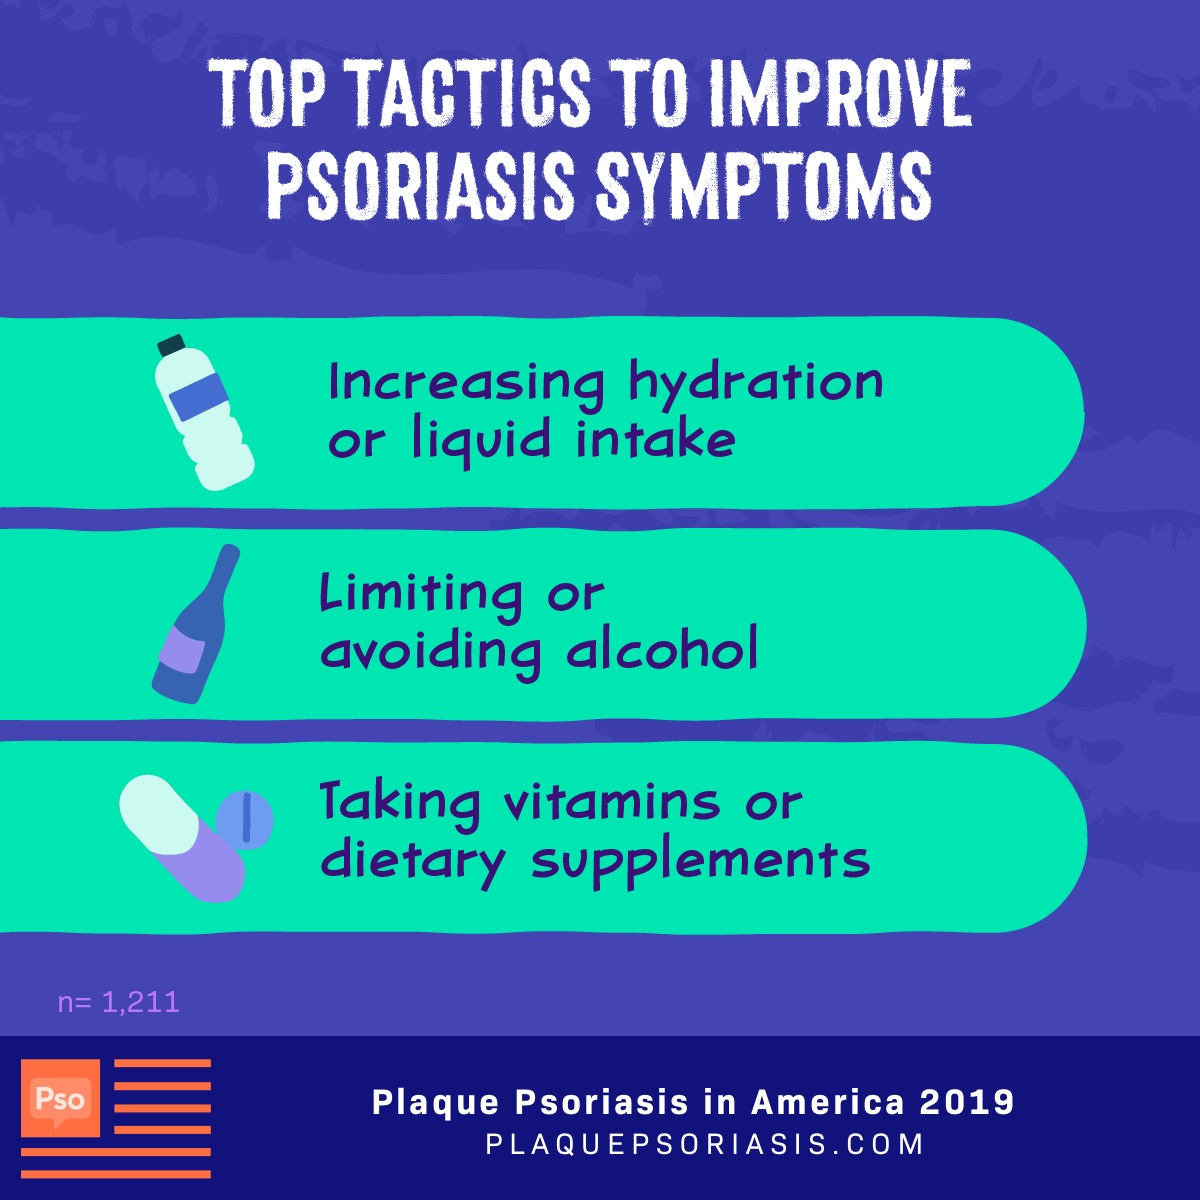 Patients try many tactics to improve psoriasis symptoms such as taking vitamins, avoiding alcohol and avoiding fragrances in lotions.